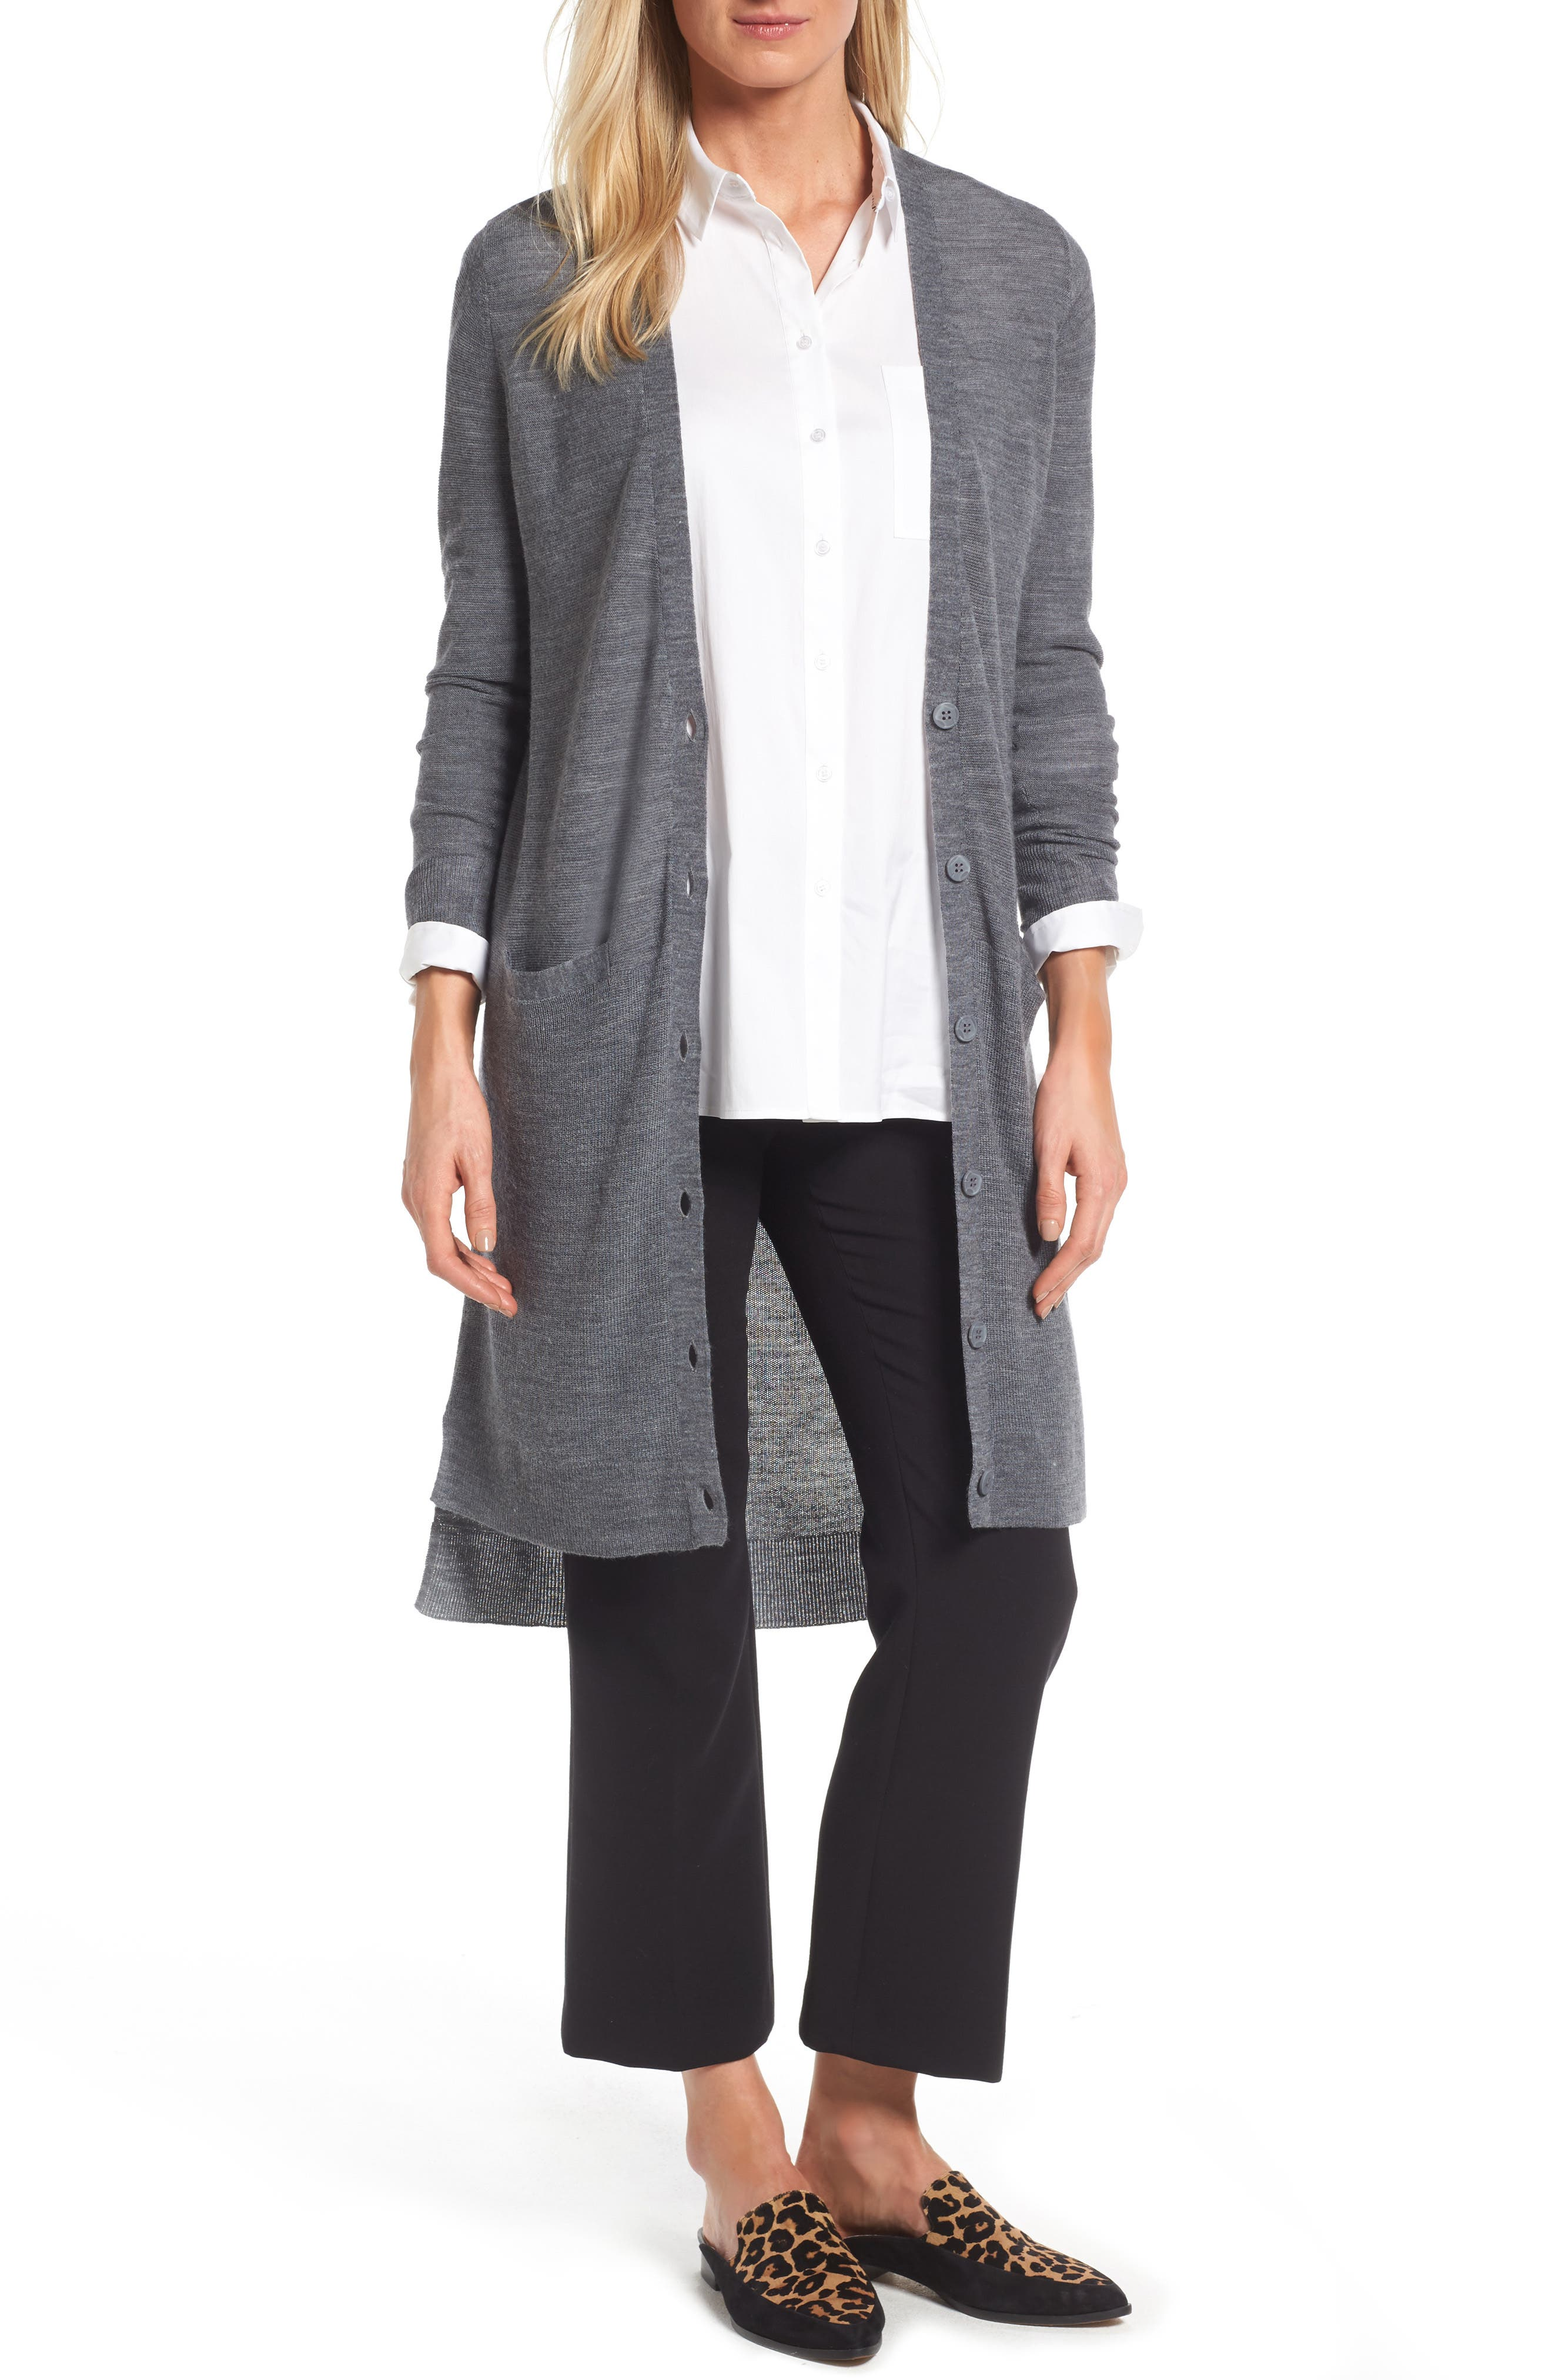 Women's Cardigan Sweaters: Long, Cropped & More | Nordstrom